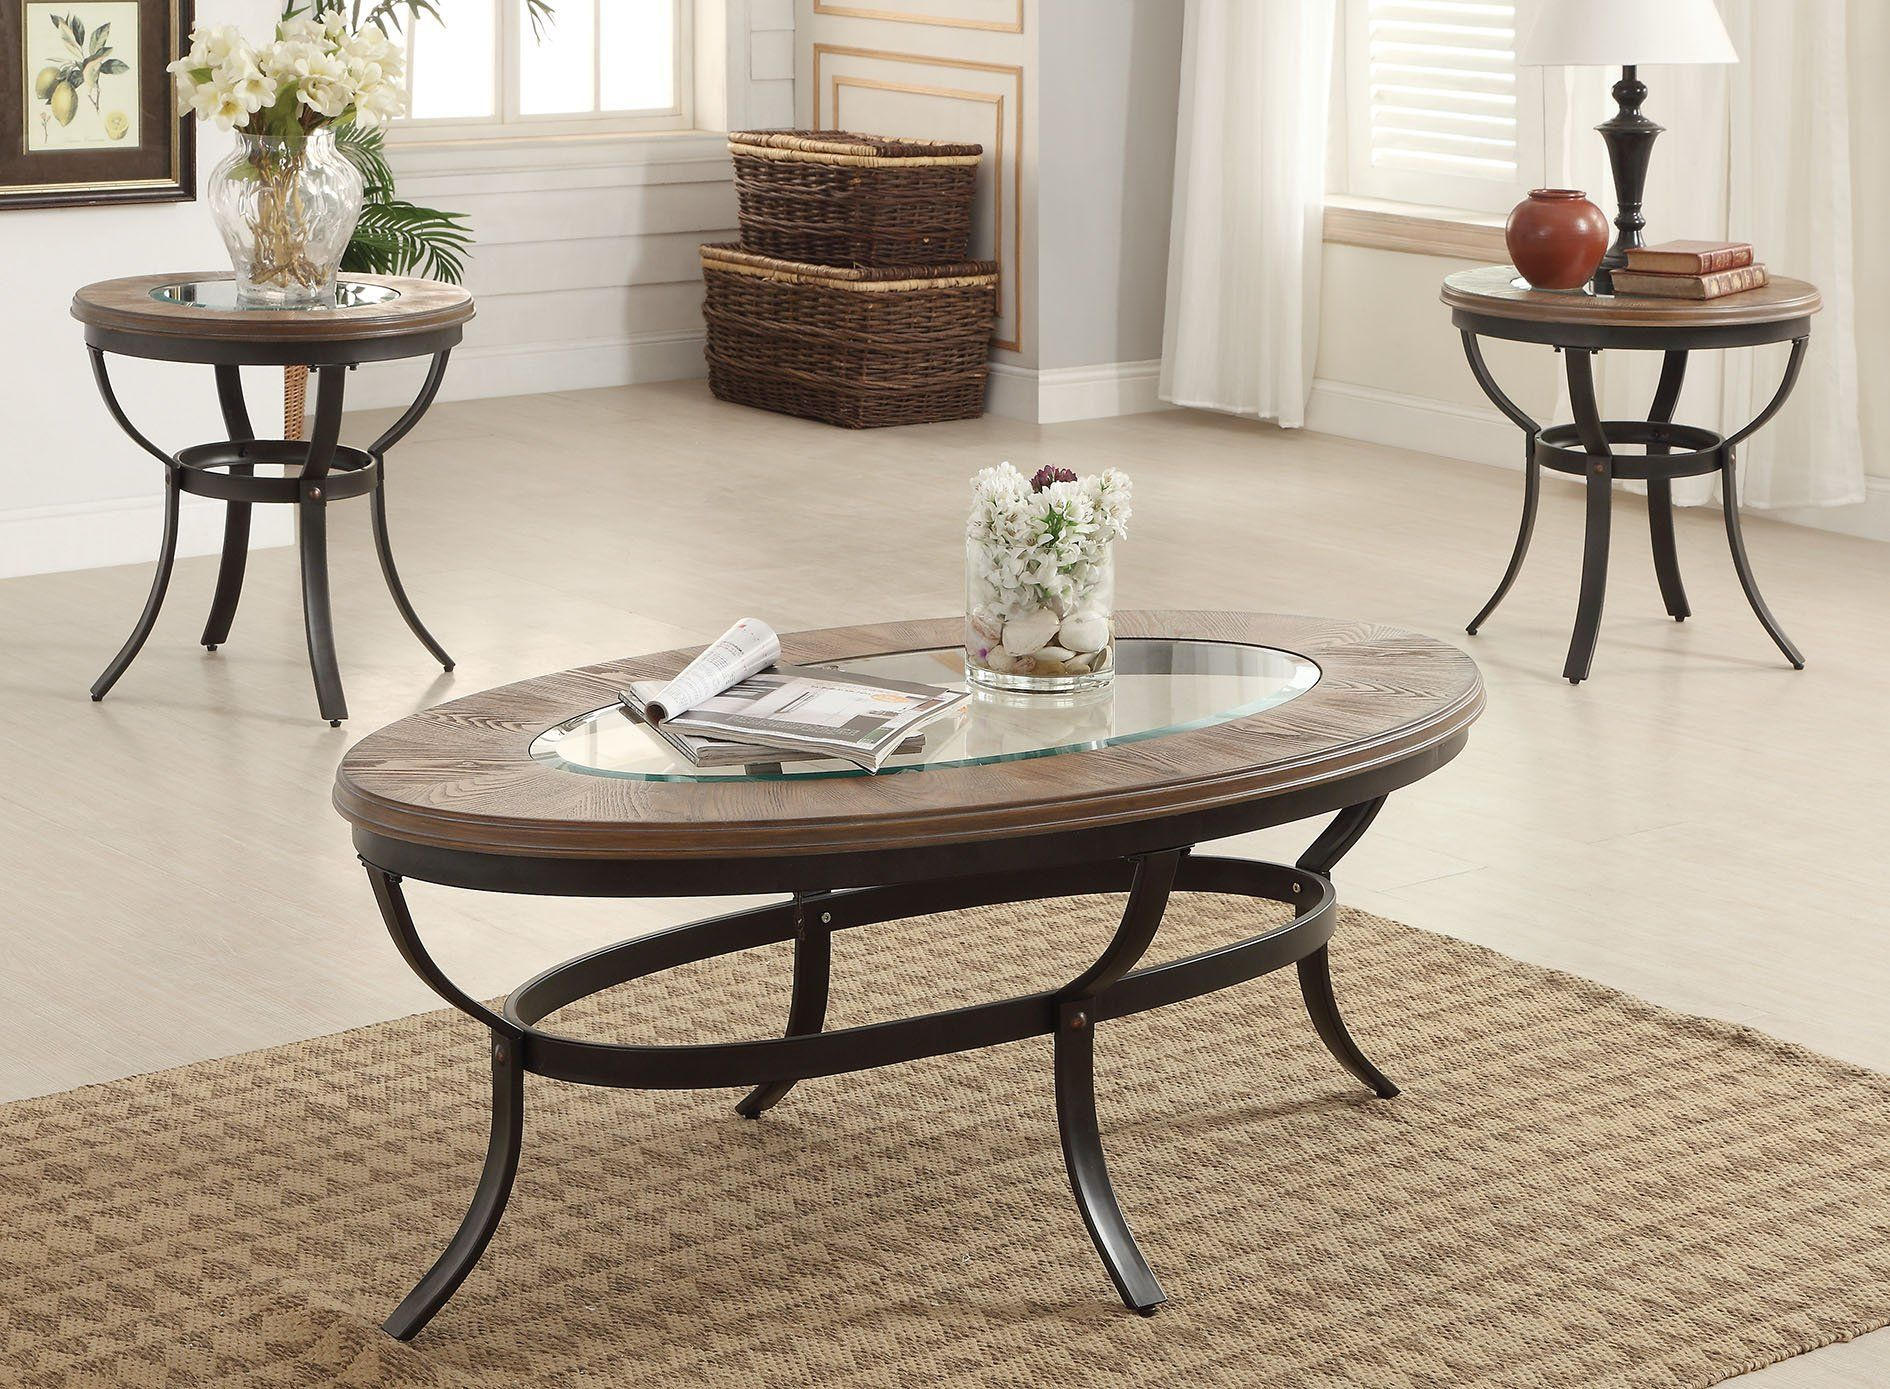 Acme Furniture Coffee Table Mirrored And Faux Diamonds Coffee Table Mirrored Coffee Tables Living Room Table Sets [ 1500 x 1500 Pixel ]